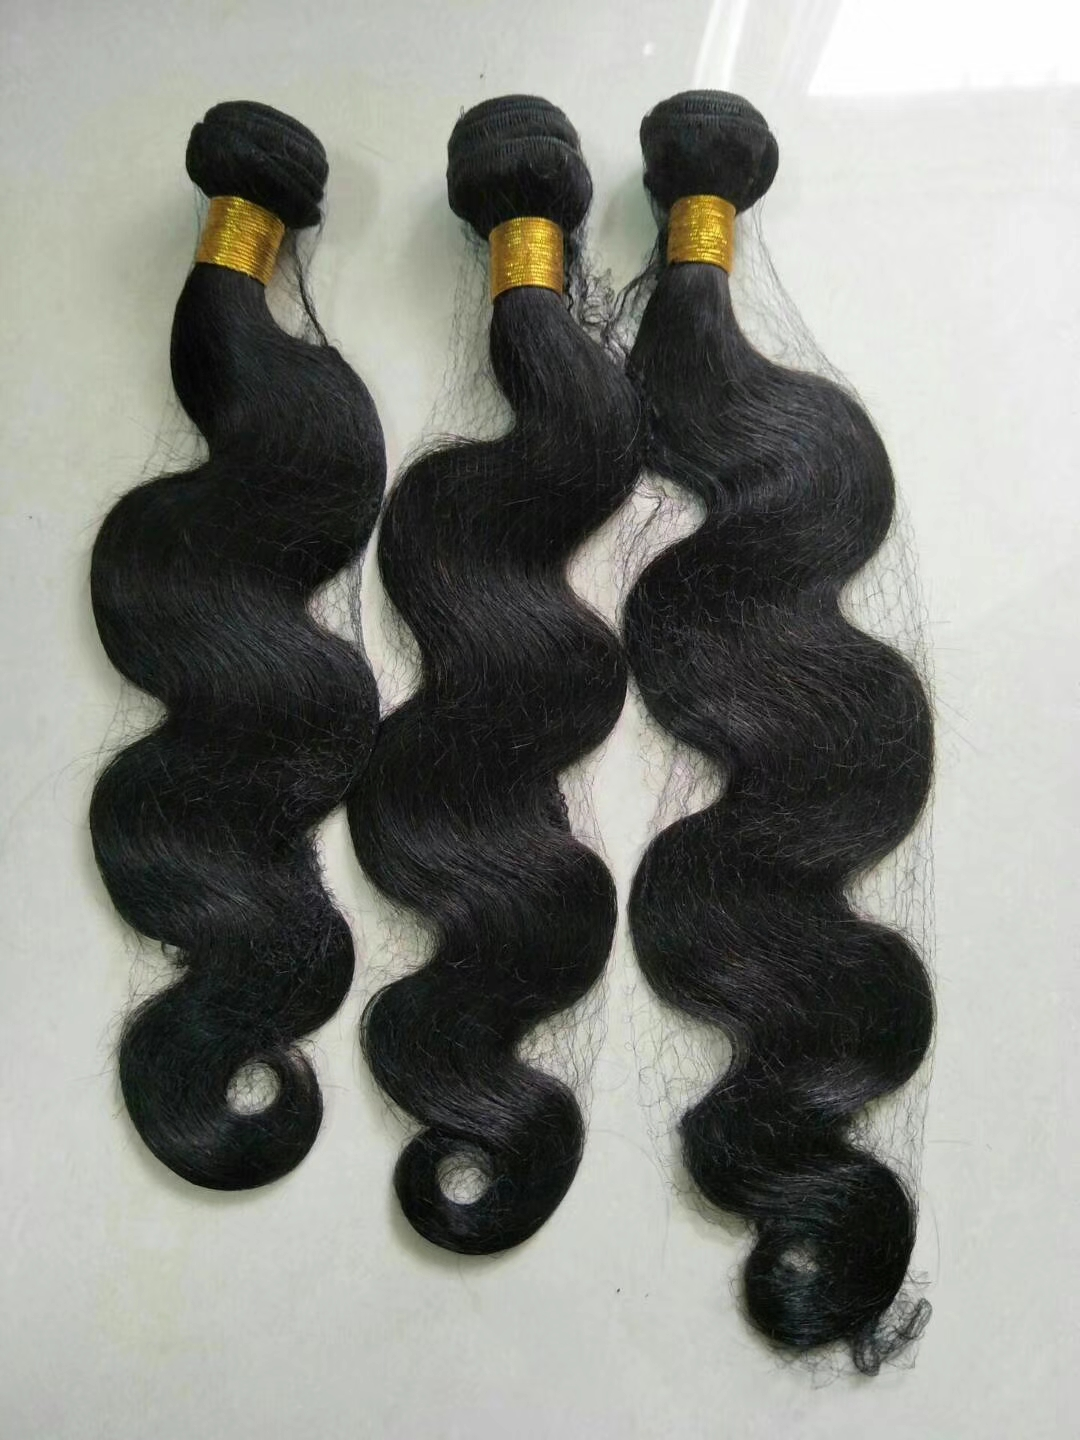 Peruvian virgin human hair bundles